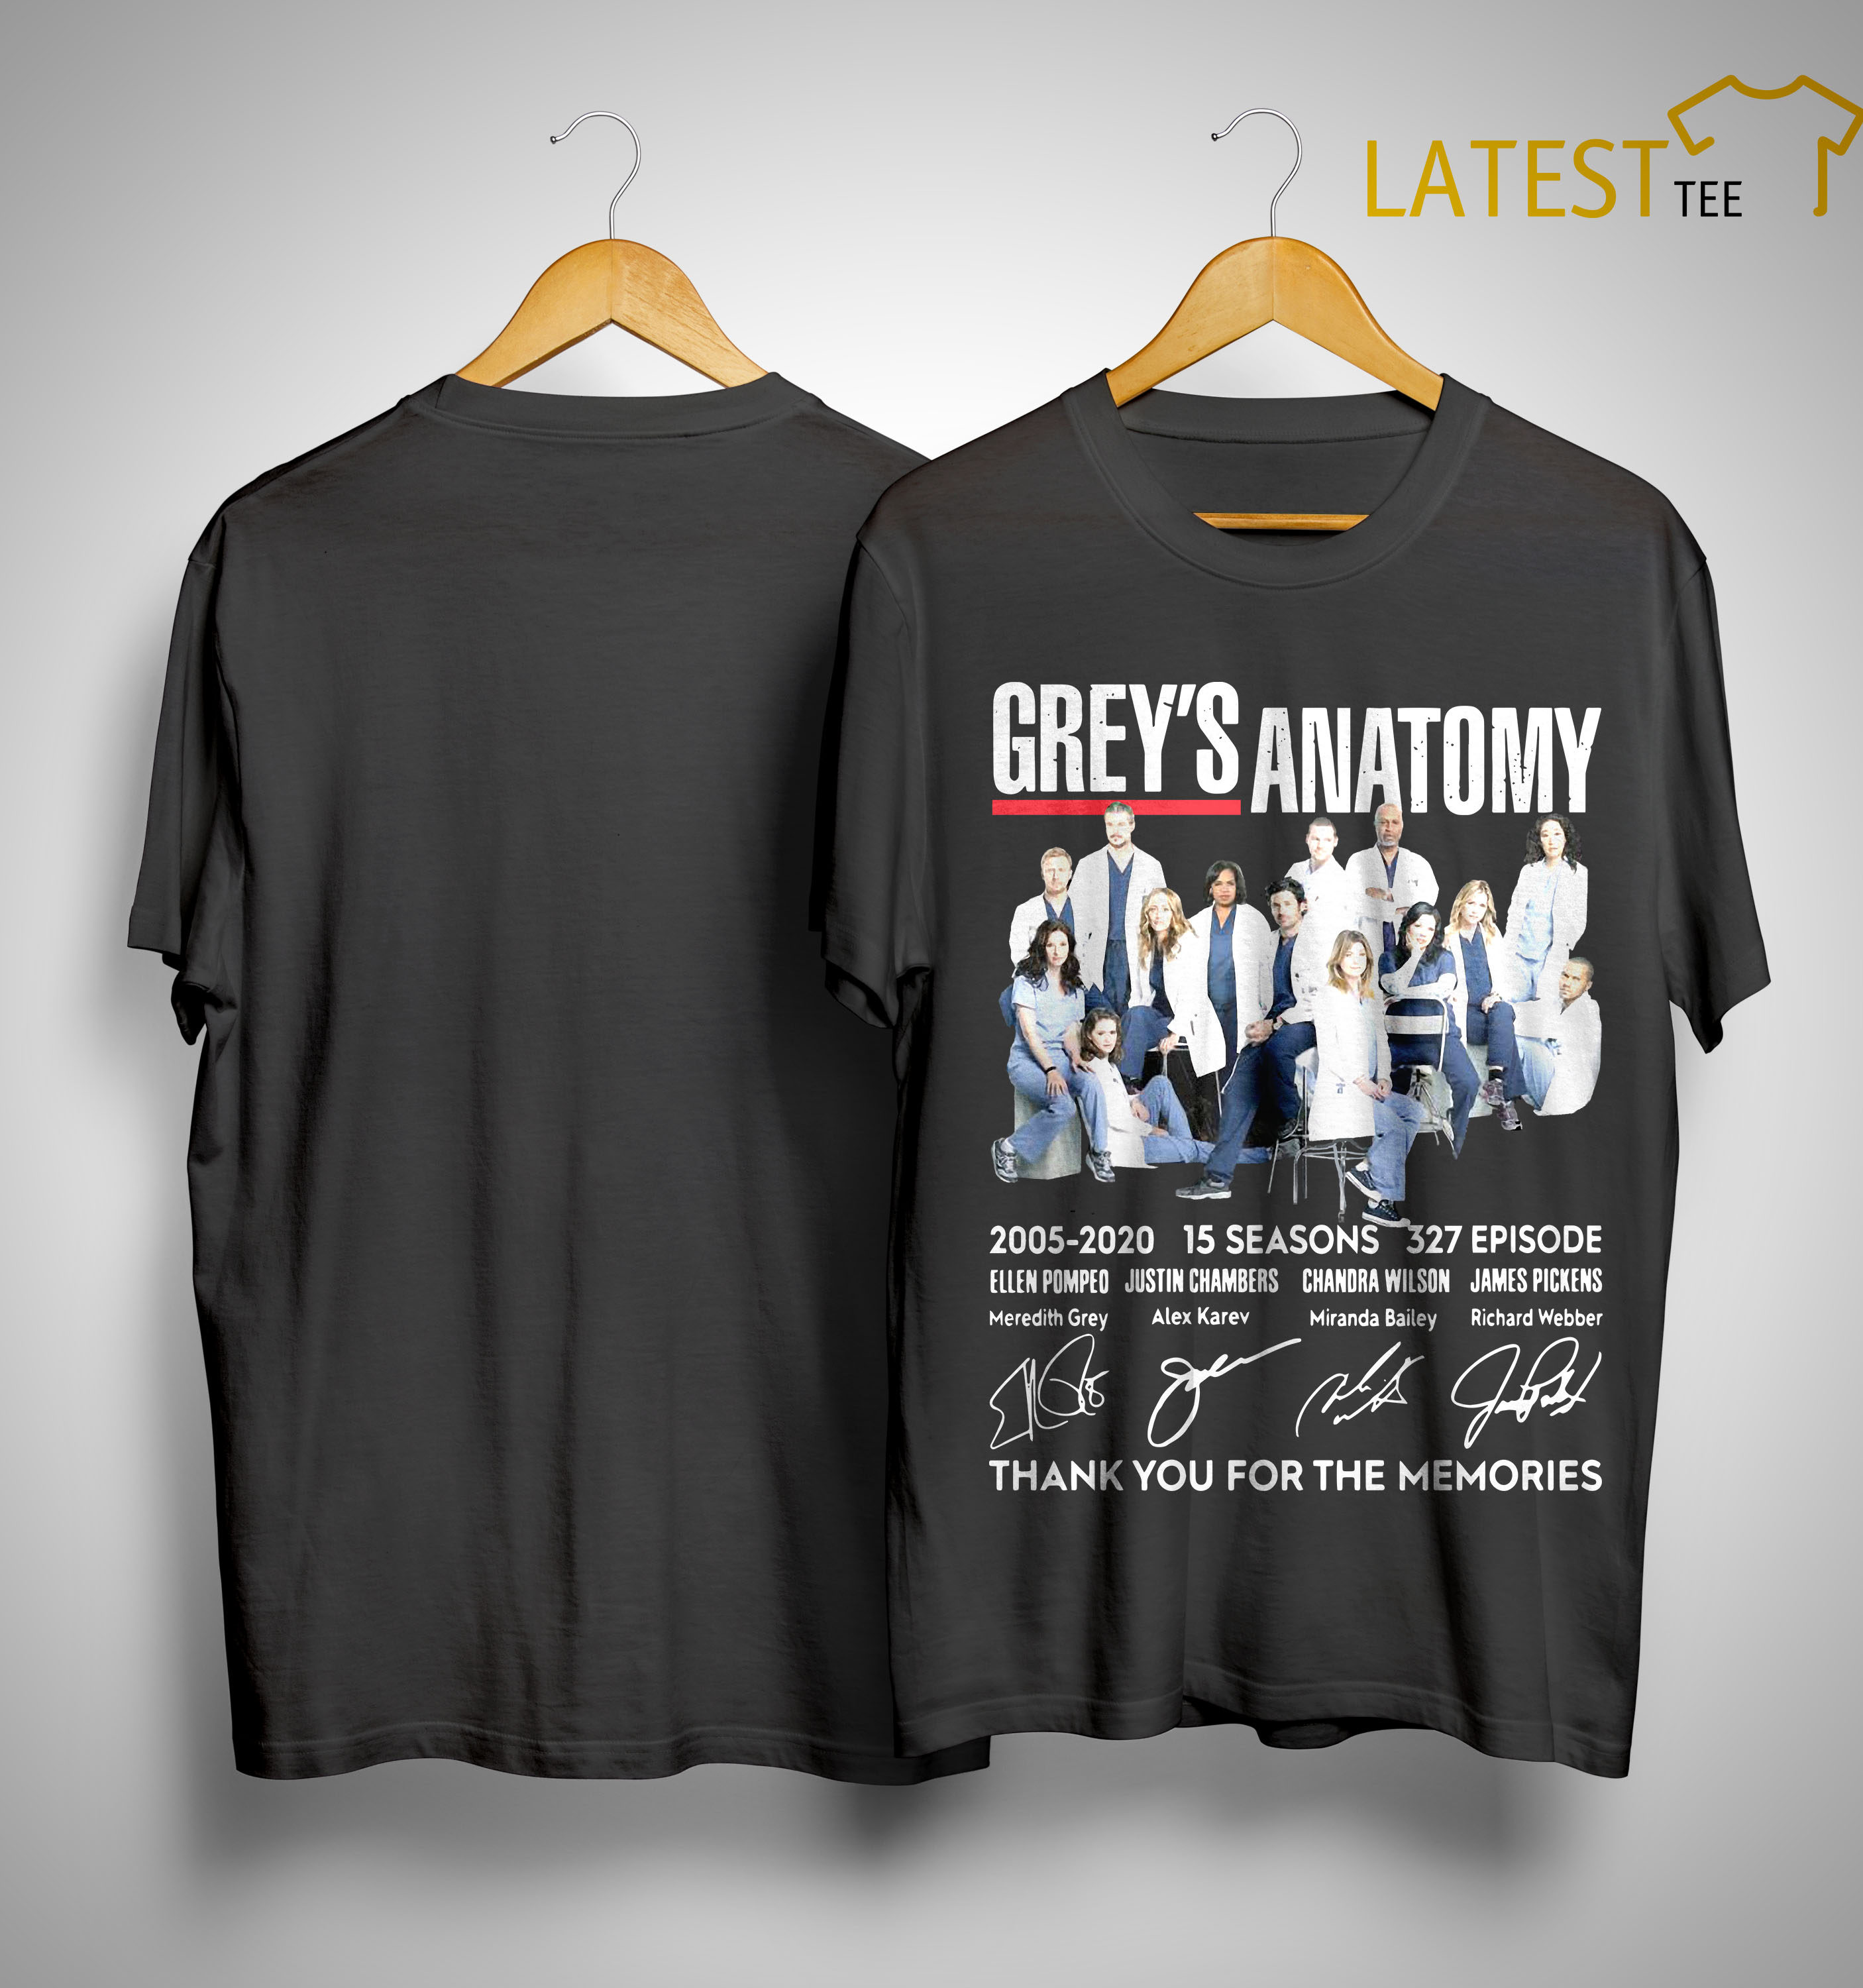 Grey\'S Anatomy 2020 Schedule Grey's Anatomy 2005 2020 15 Seasons 327 Episode Thank You For The